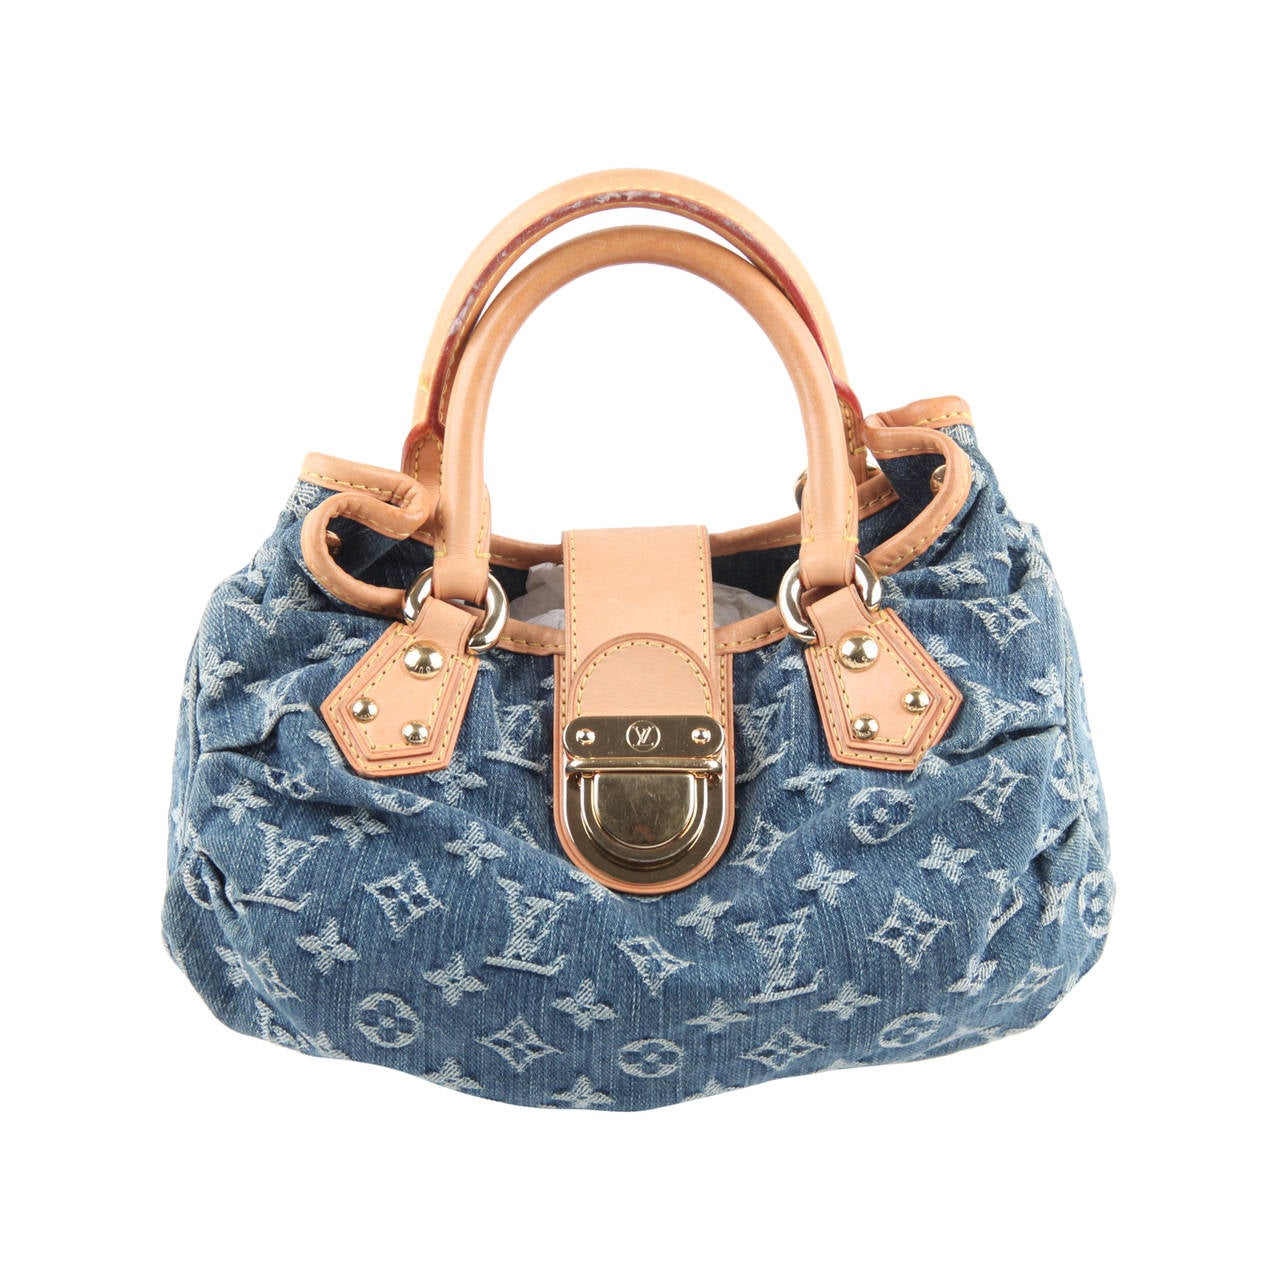 Louis Vuitton Blue Monogram Denim Pleaty Bag Handbag Purse